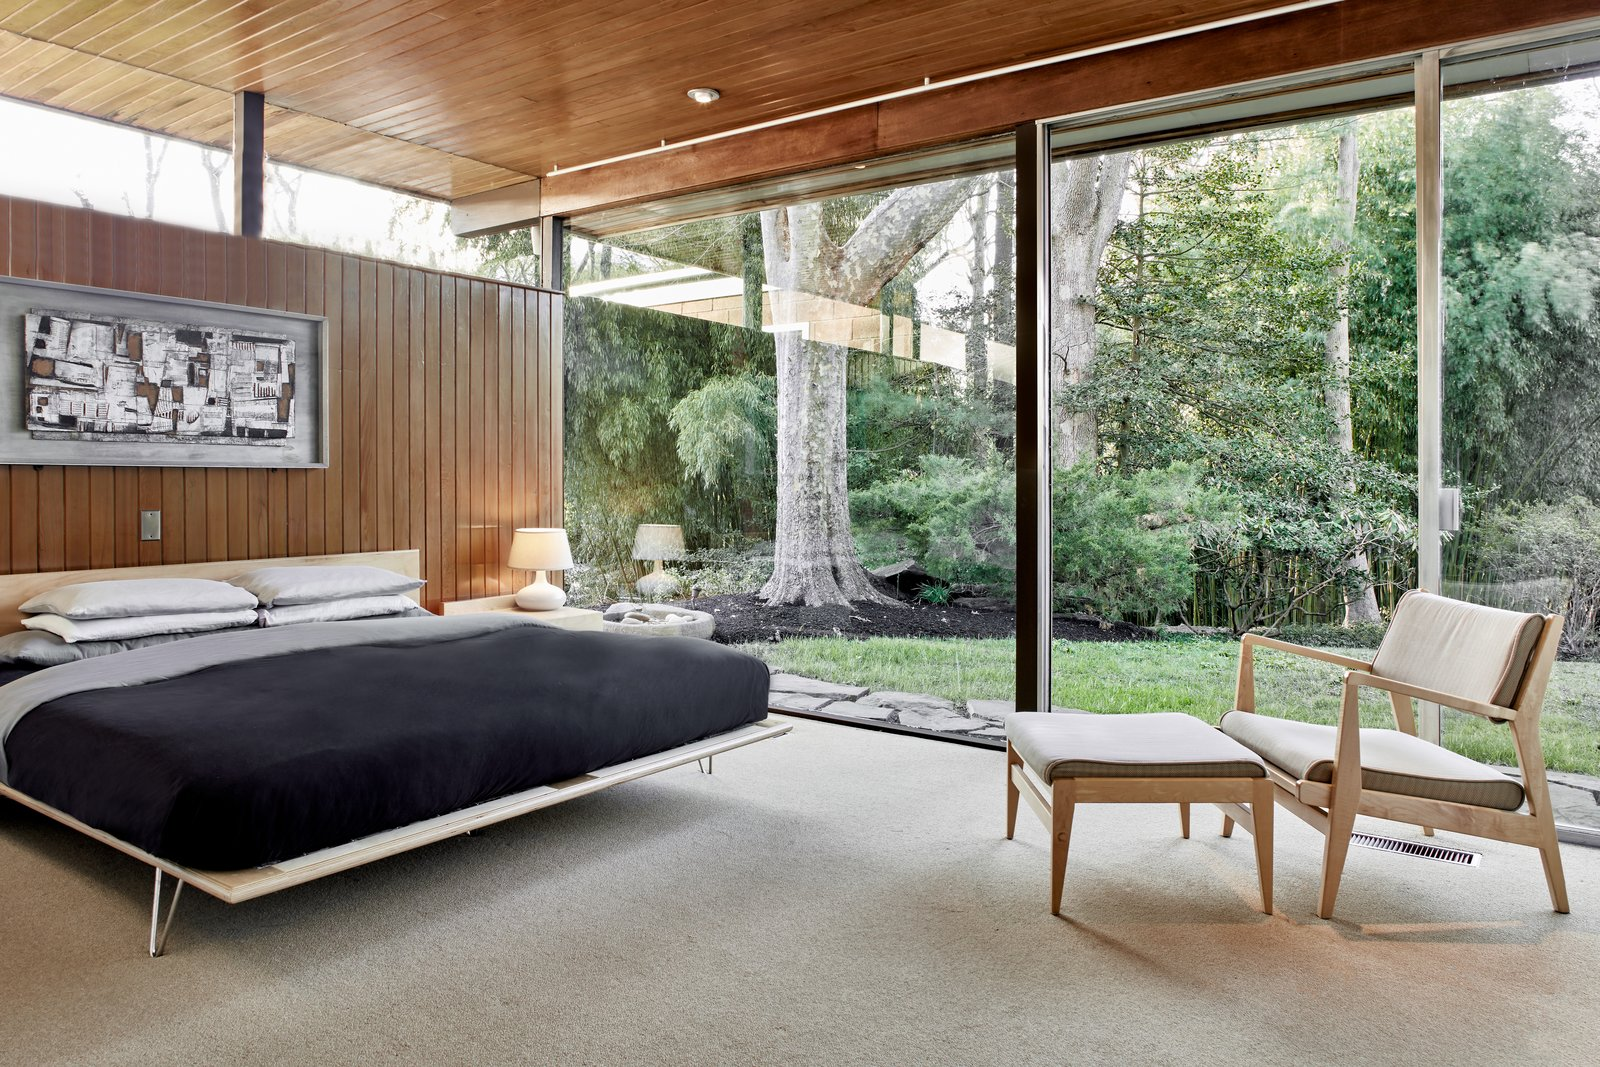 Tagged: Bedroom, Bed, Carpet Floor, Chair, and Ceiling Lighting.  Photo 11 of 13 in The Stunningly Restored Hassrick Residence by Richard Neutra Hits the Market at $2.2M